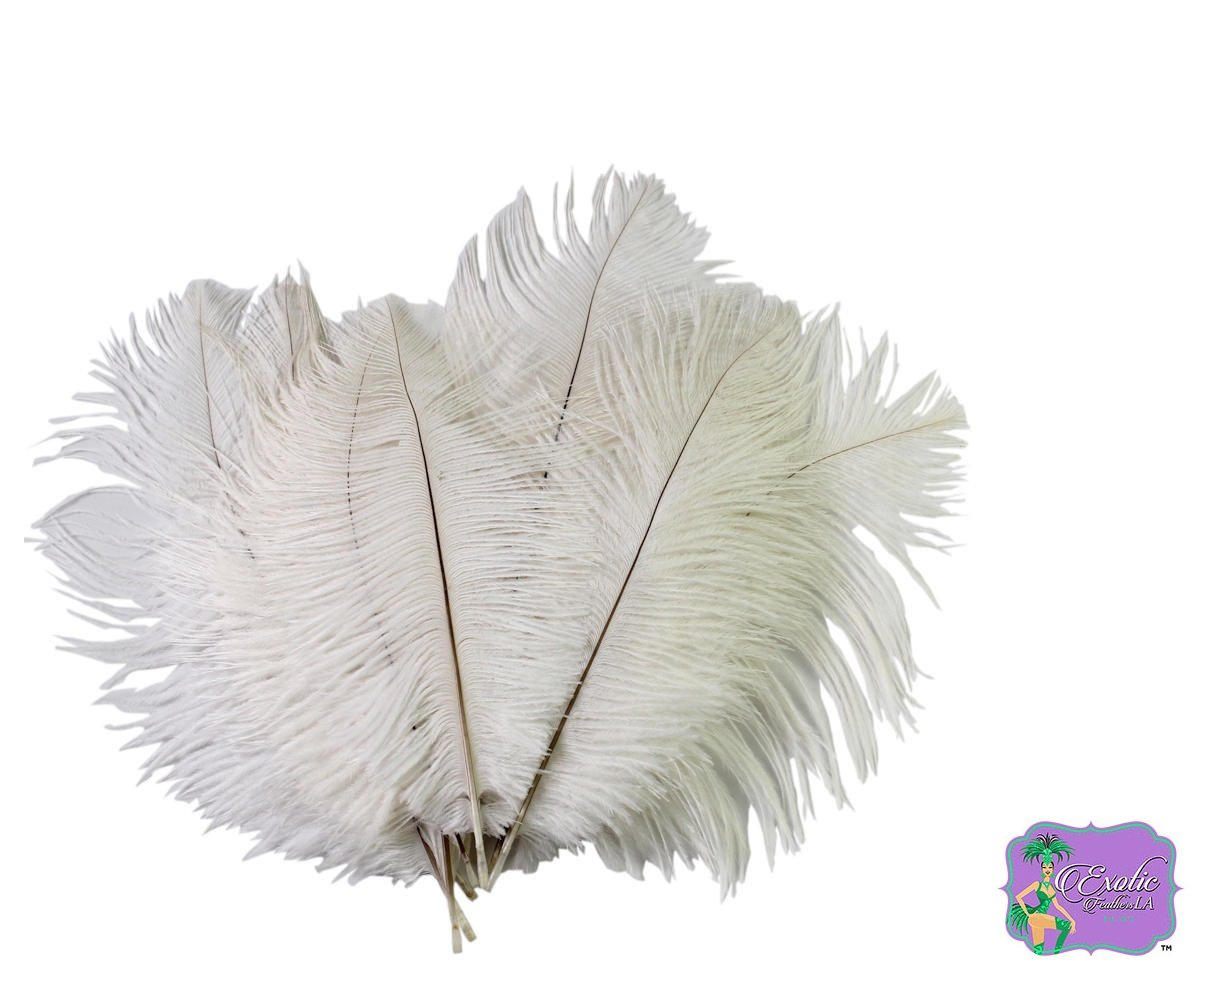 Special Sale OSTRICH Feathers Wholesale Bulk 15/18'' long DELUXE TAIL PLUME Feathers Bleach White Qty 100 by ExoticFeathersLA (Image #1)